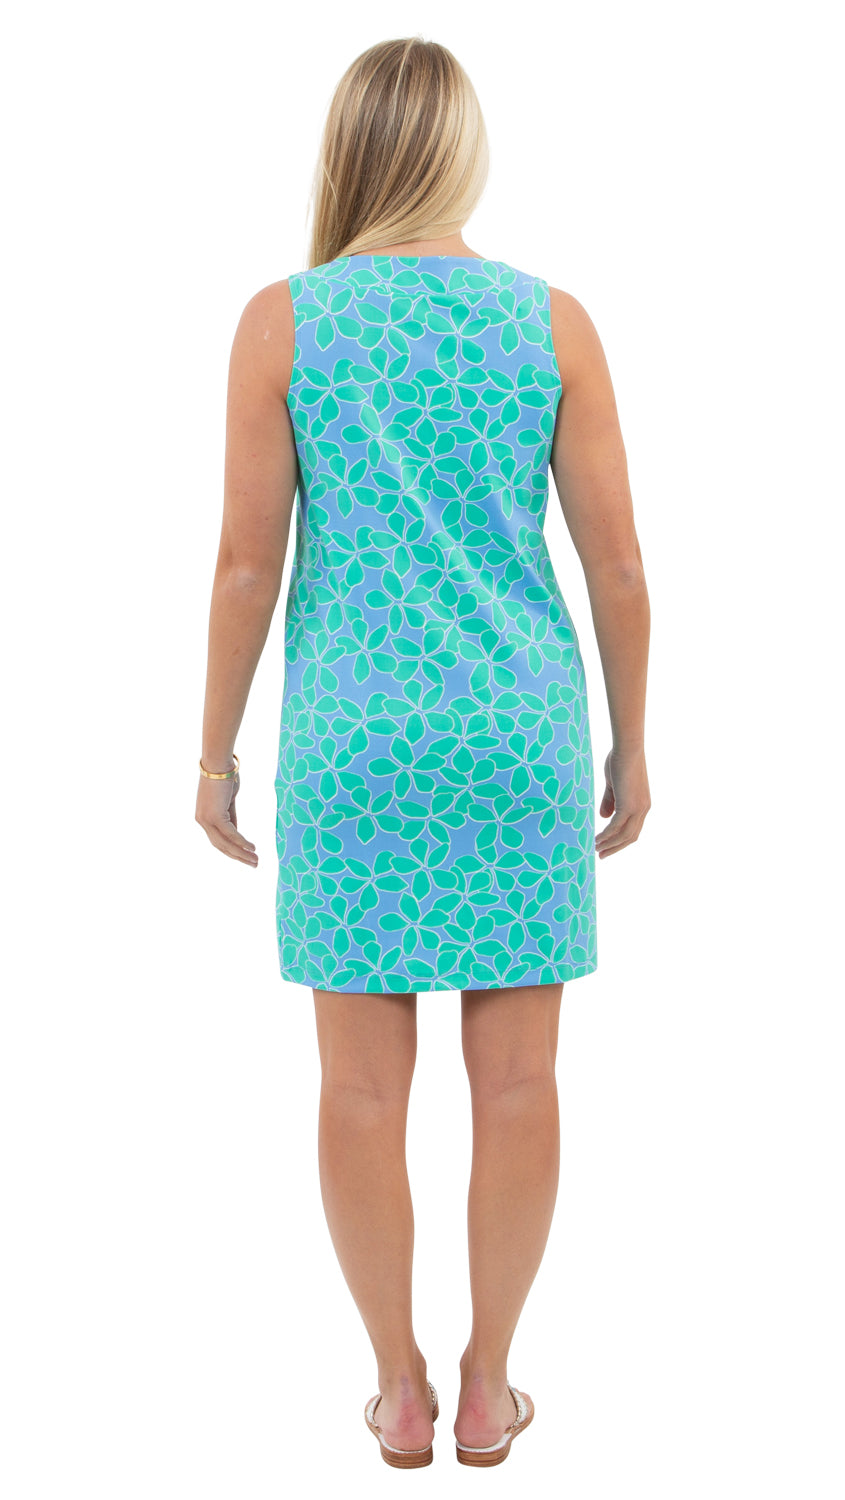 Yacht Club Shift - Resort Hibiscus Mint/Blue